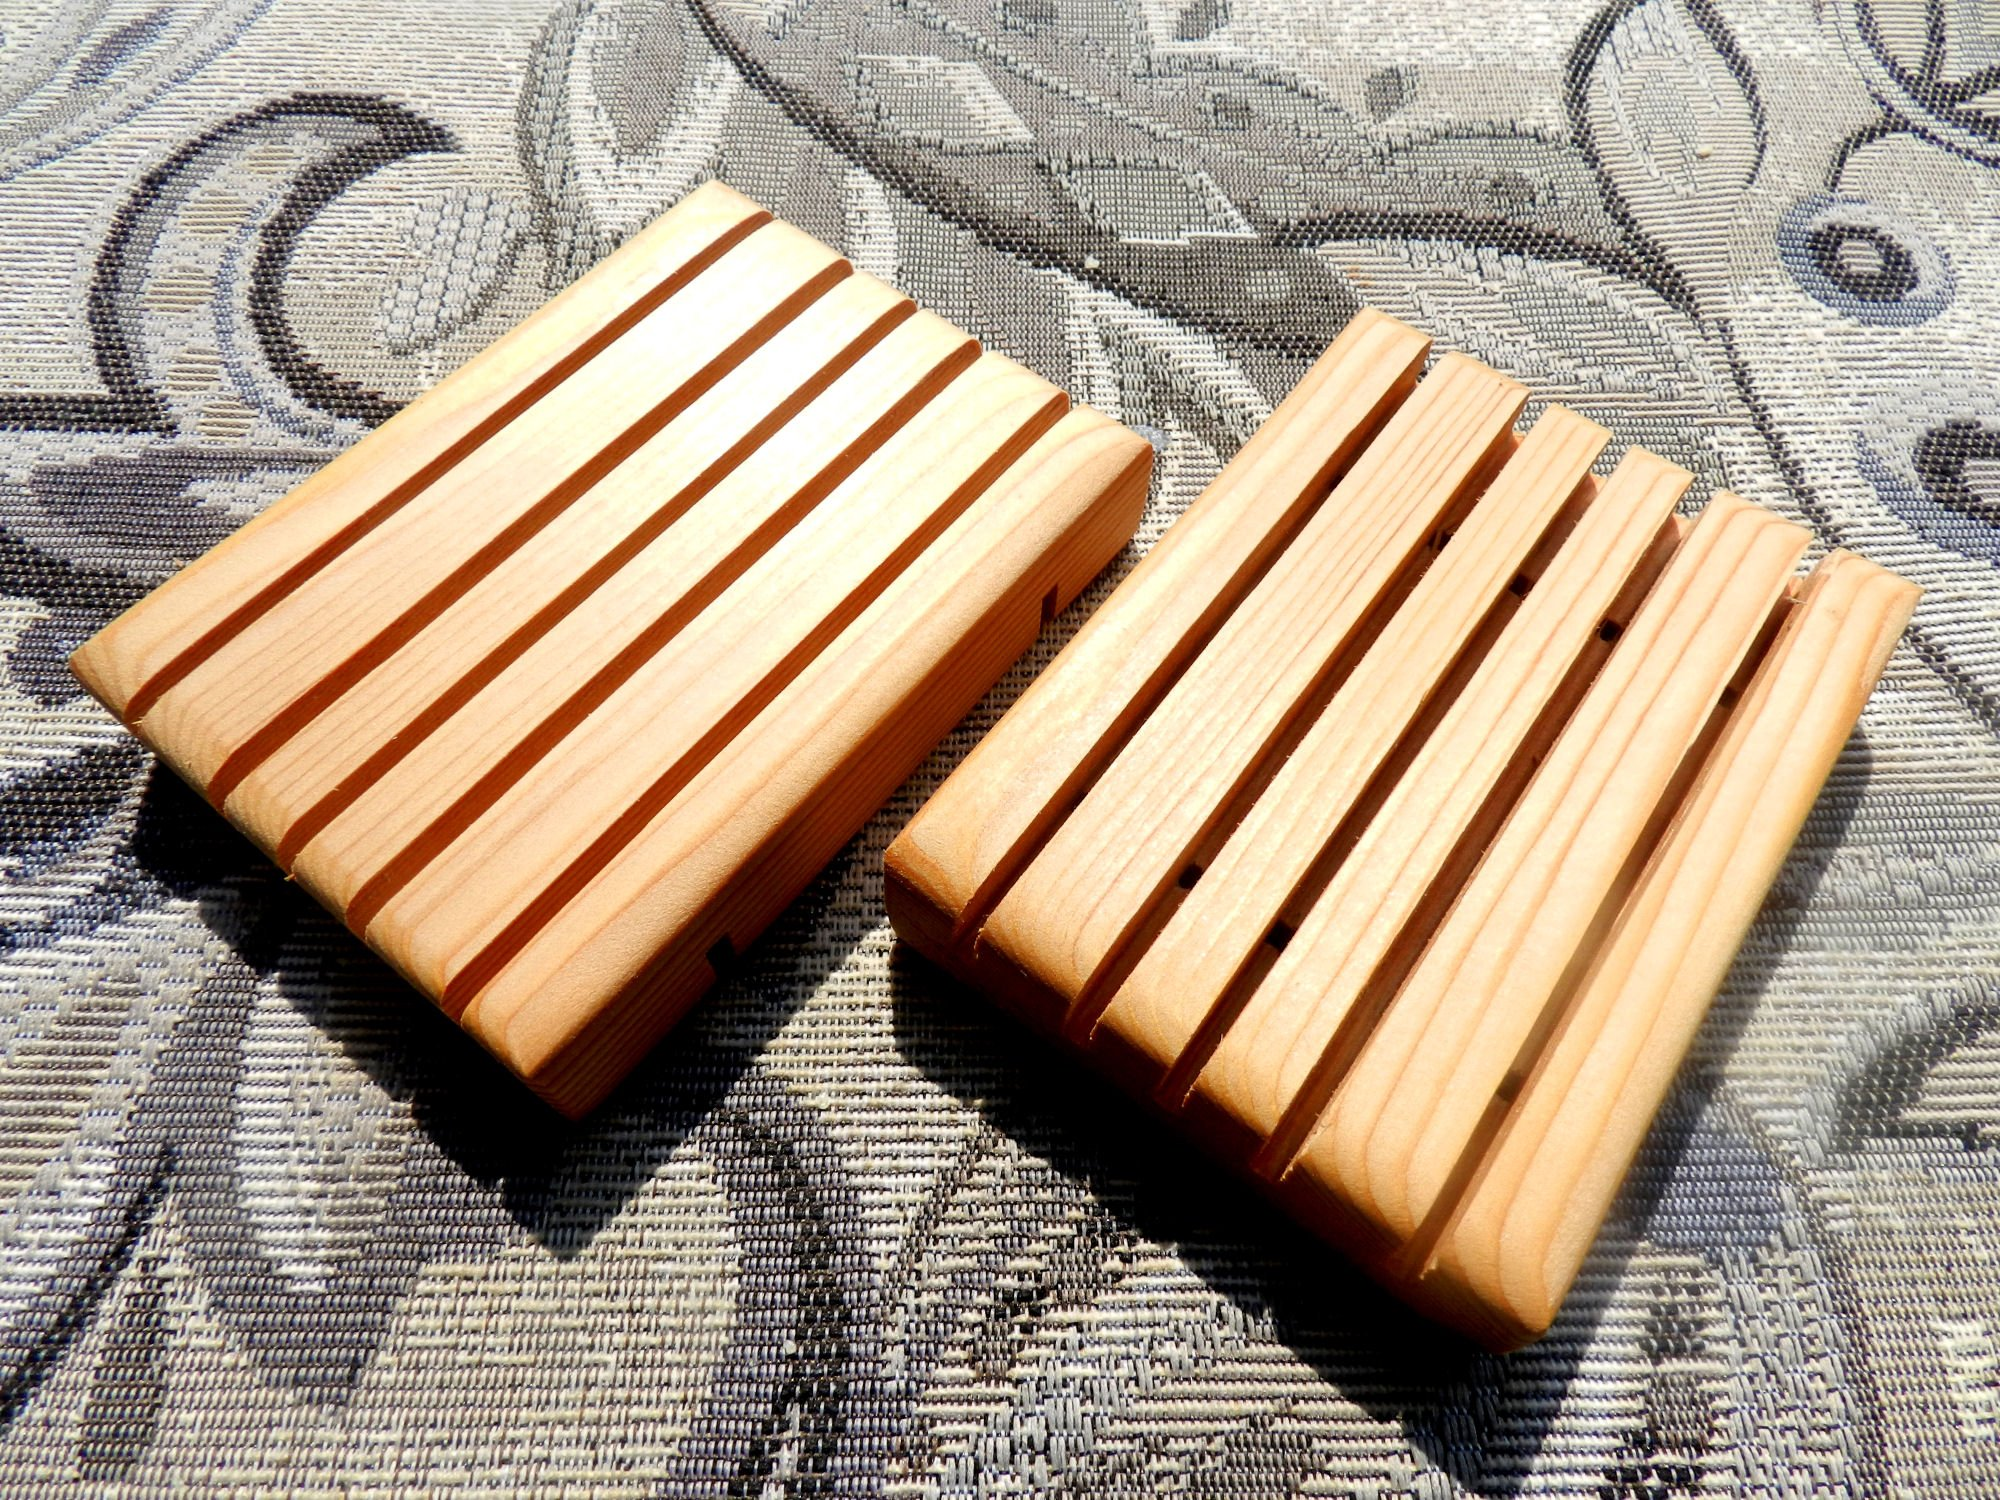 Cedar Wood Soap Saver 2 pcs Dish Holder Hand Made in the USA Finished with 100% Pure Mineral Oil